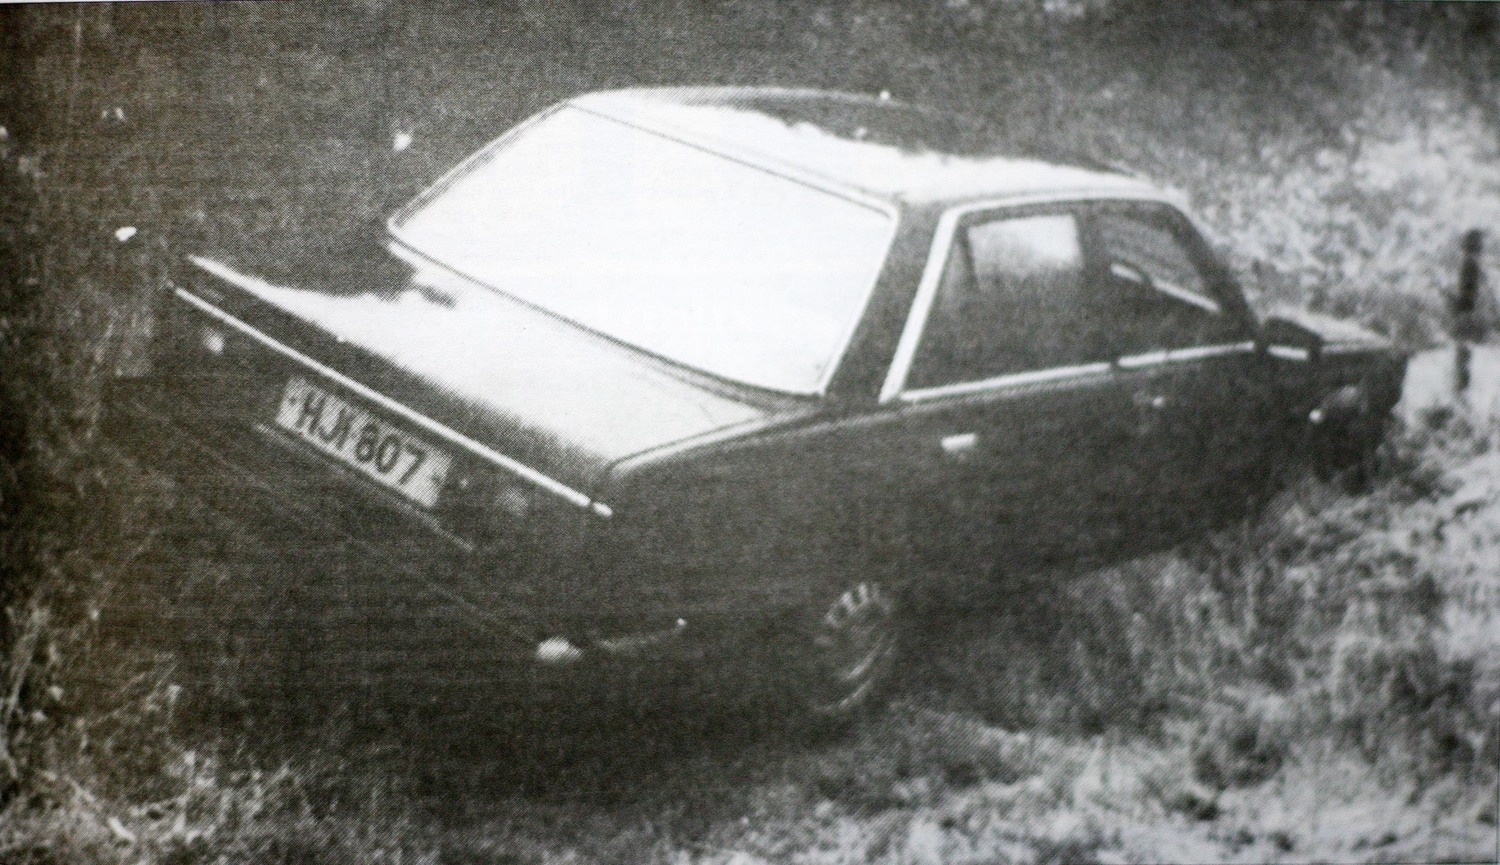 The getaway car in the Loughinisland attack